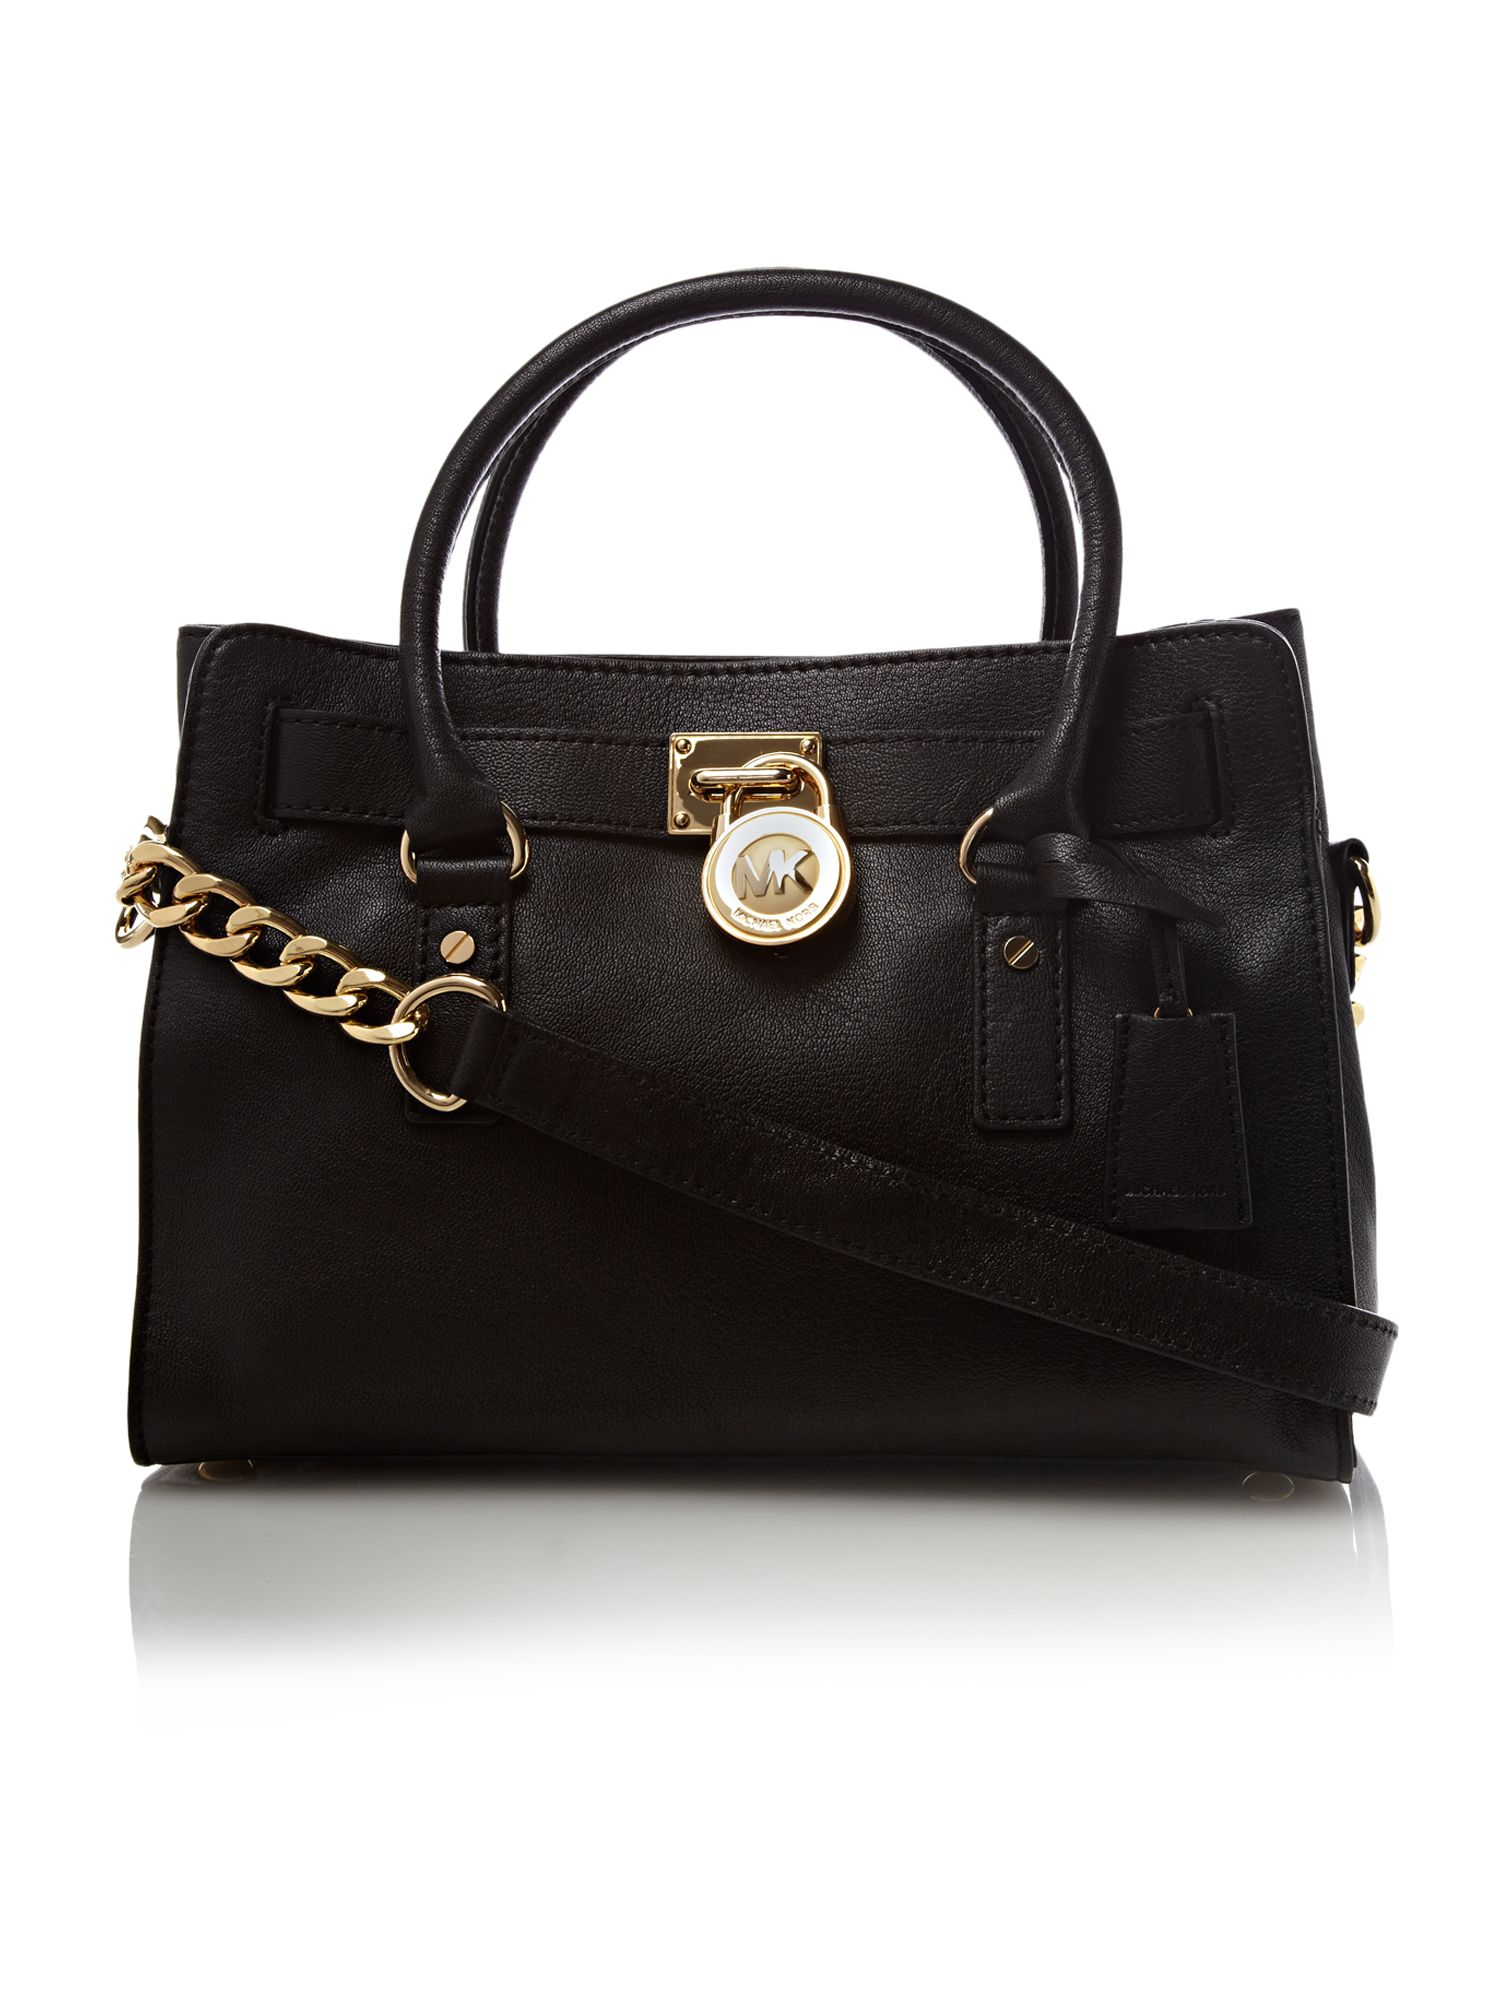 michael kors tote bag price comparison results